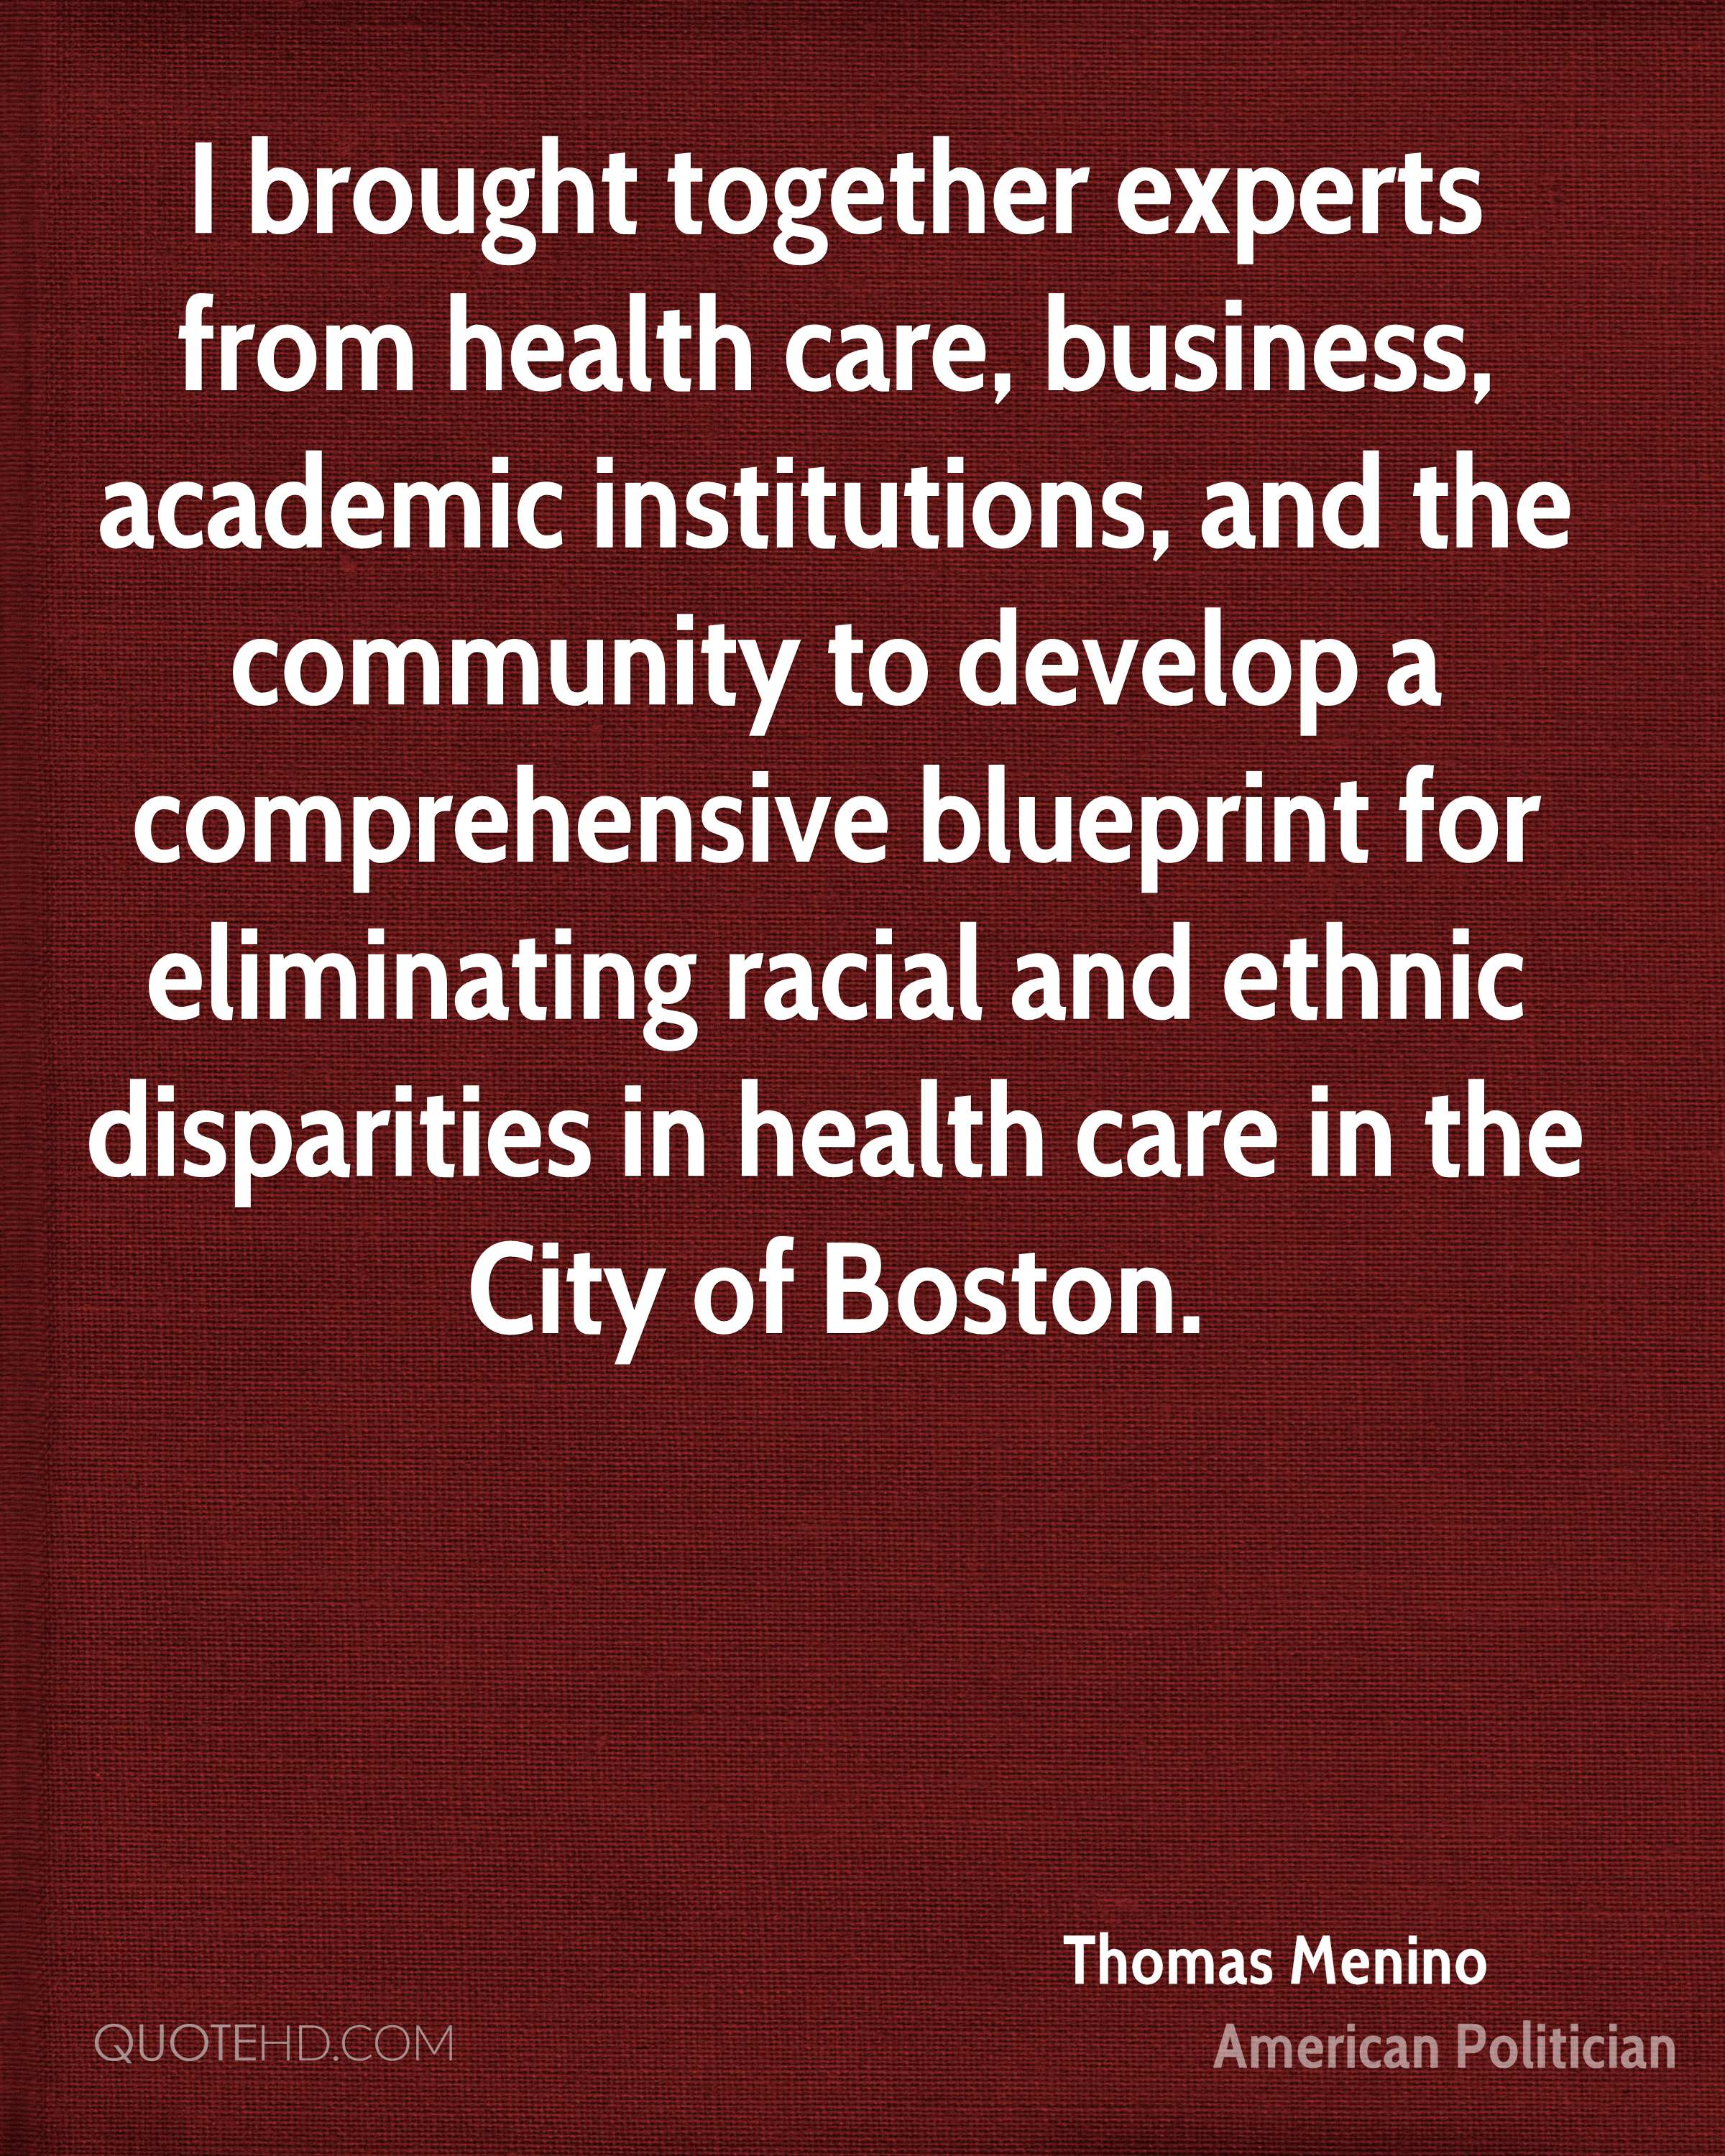 I brought together experts from health care, business, academic institutions, and the community to develop a comprehensive blueprint for eliminating racial and ethnic disparities in health care in the City of Boston.